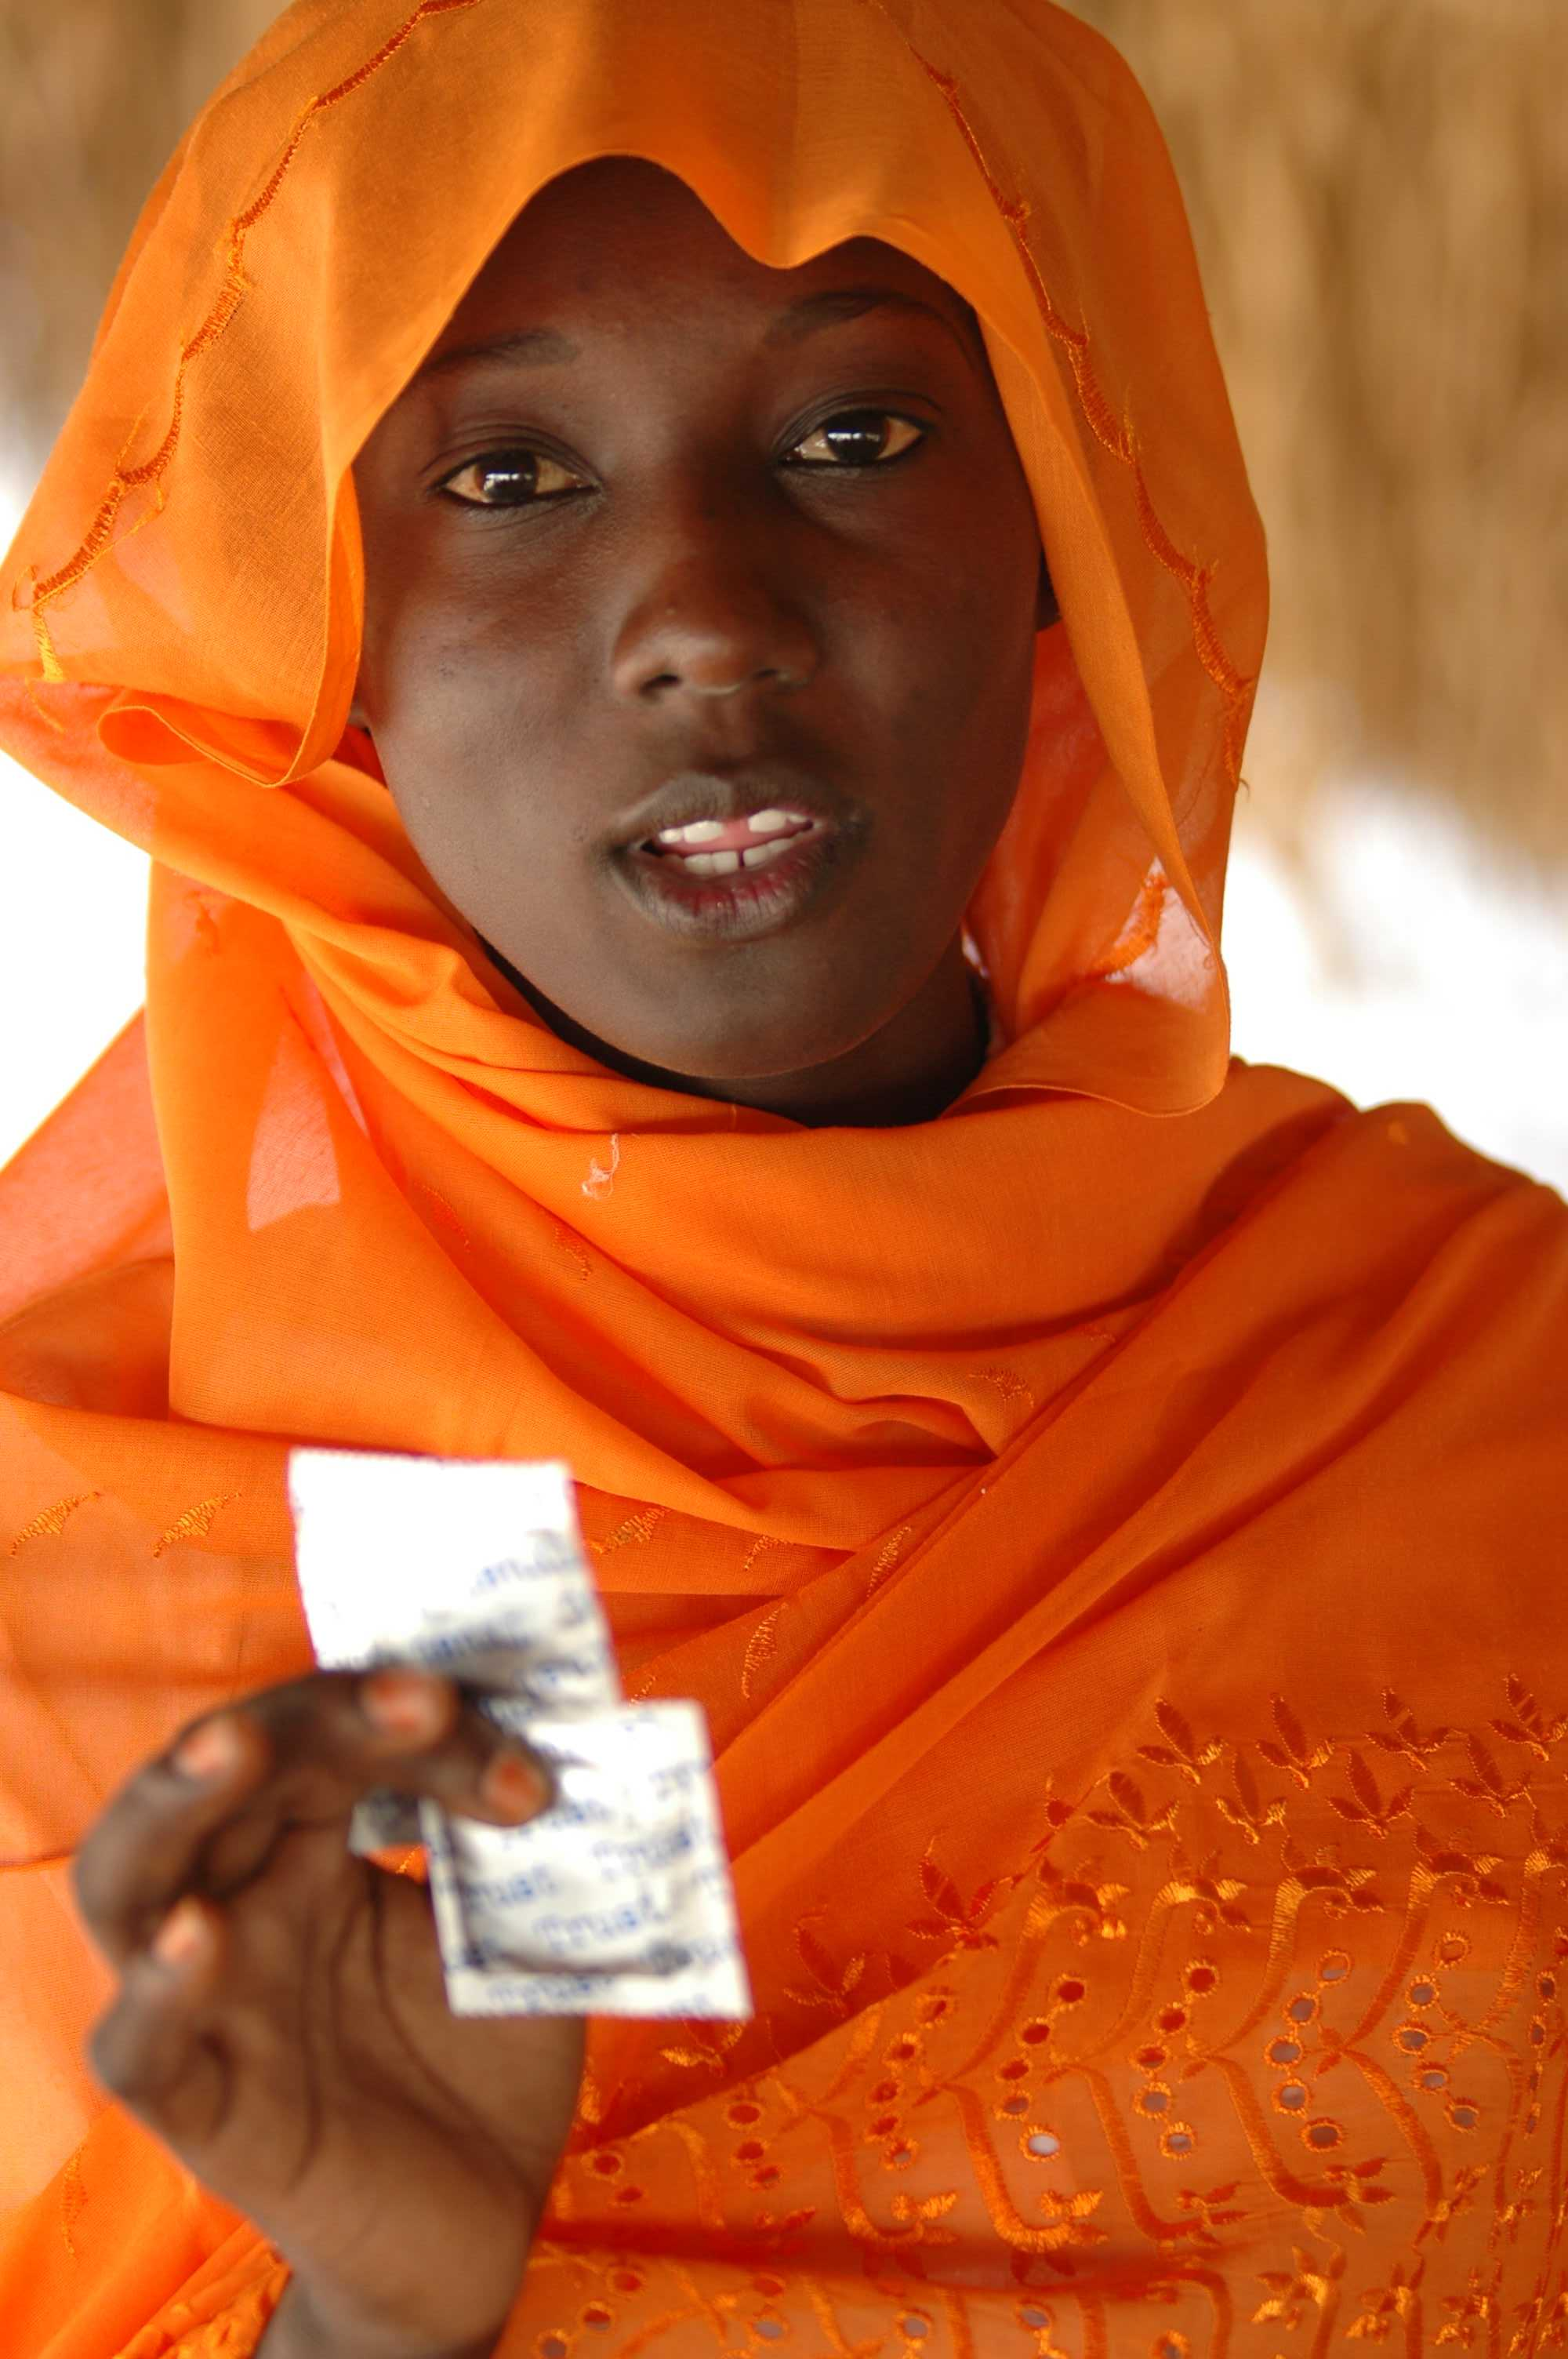 A Muslim woman working with GOAL teaches healthcare and use of condoms in Sudan, May 2006. GOAL is an international humanitarian organisation.